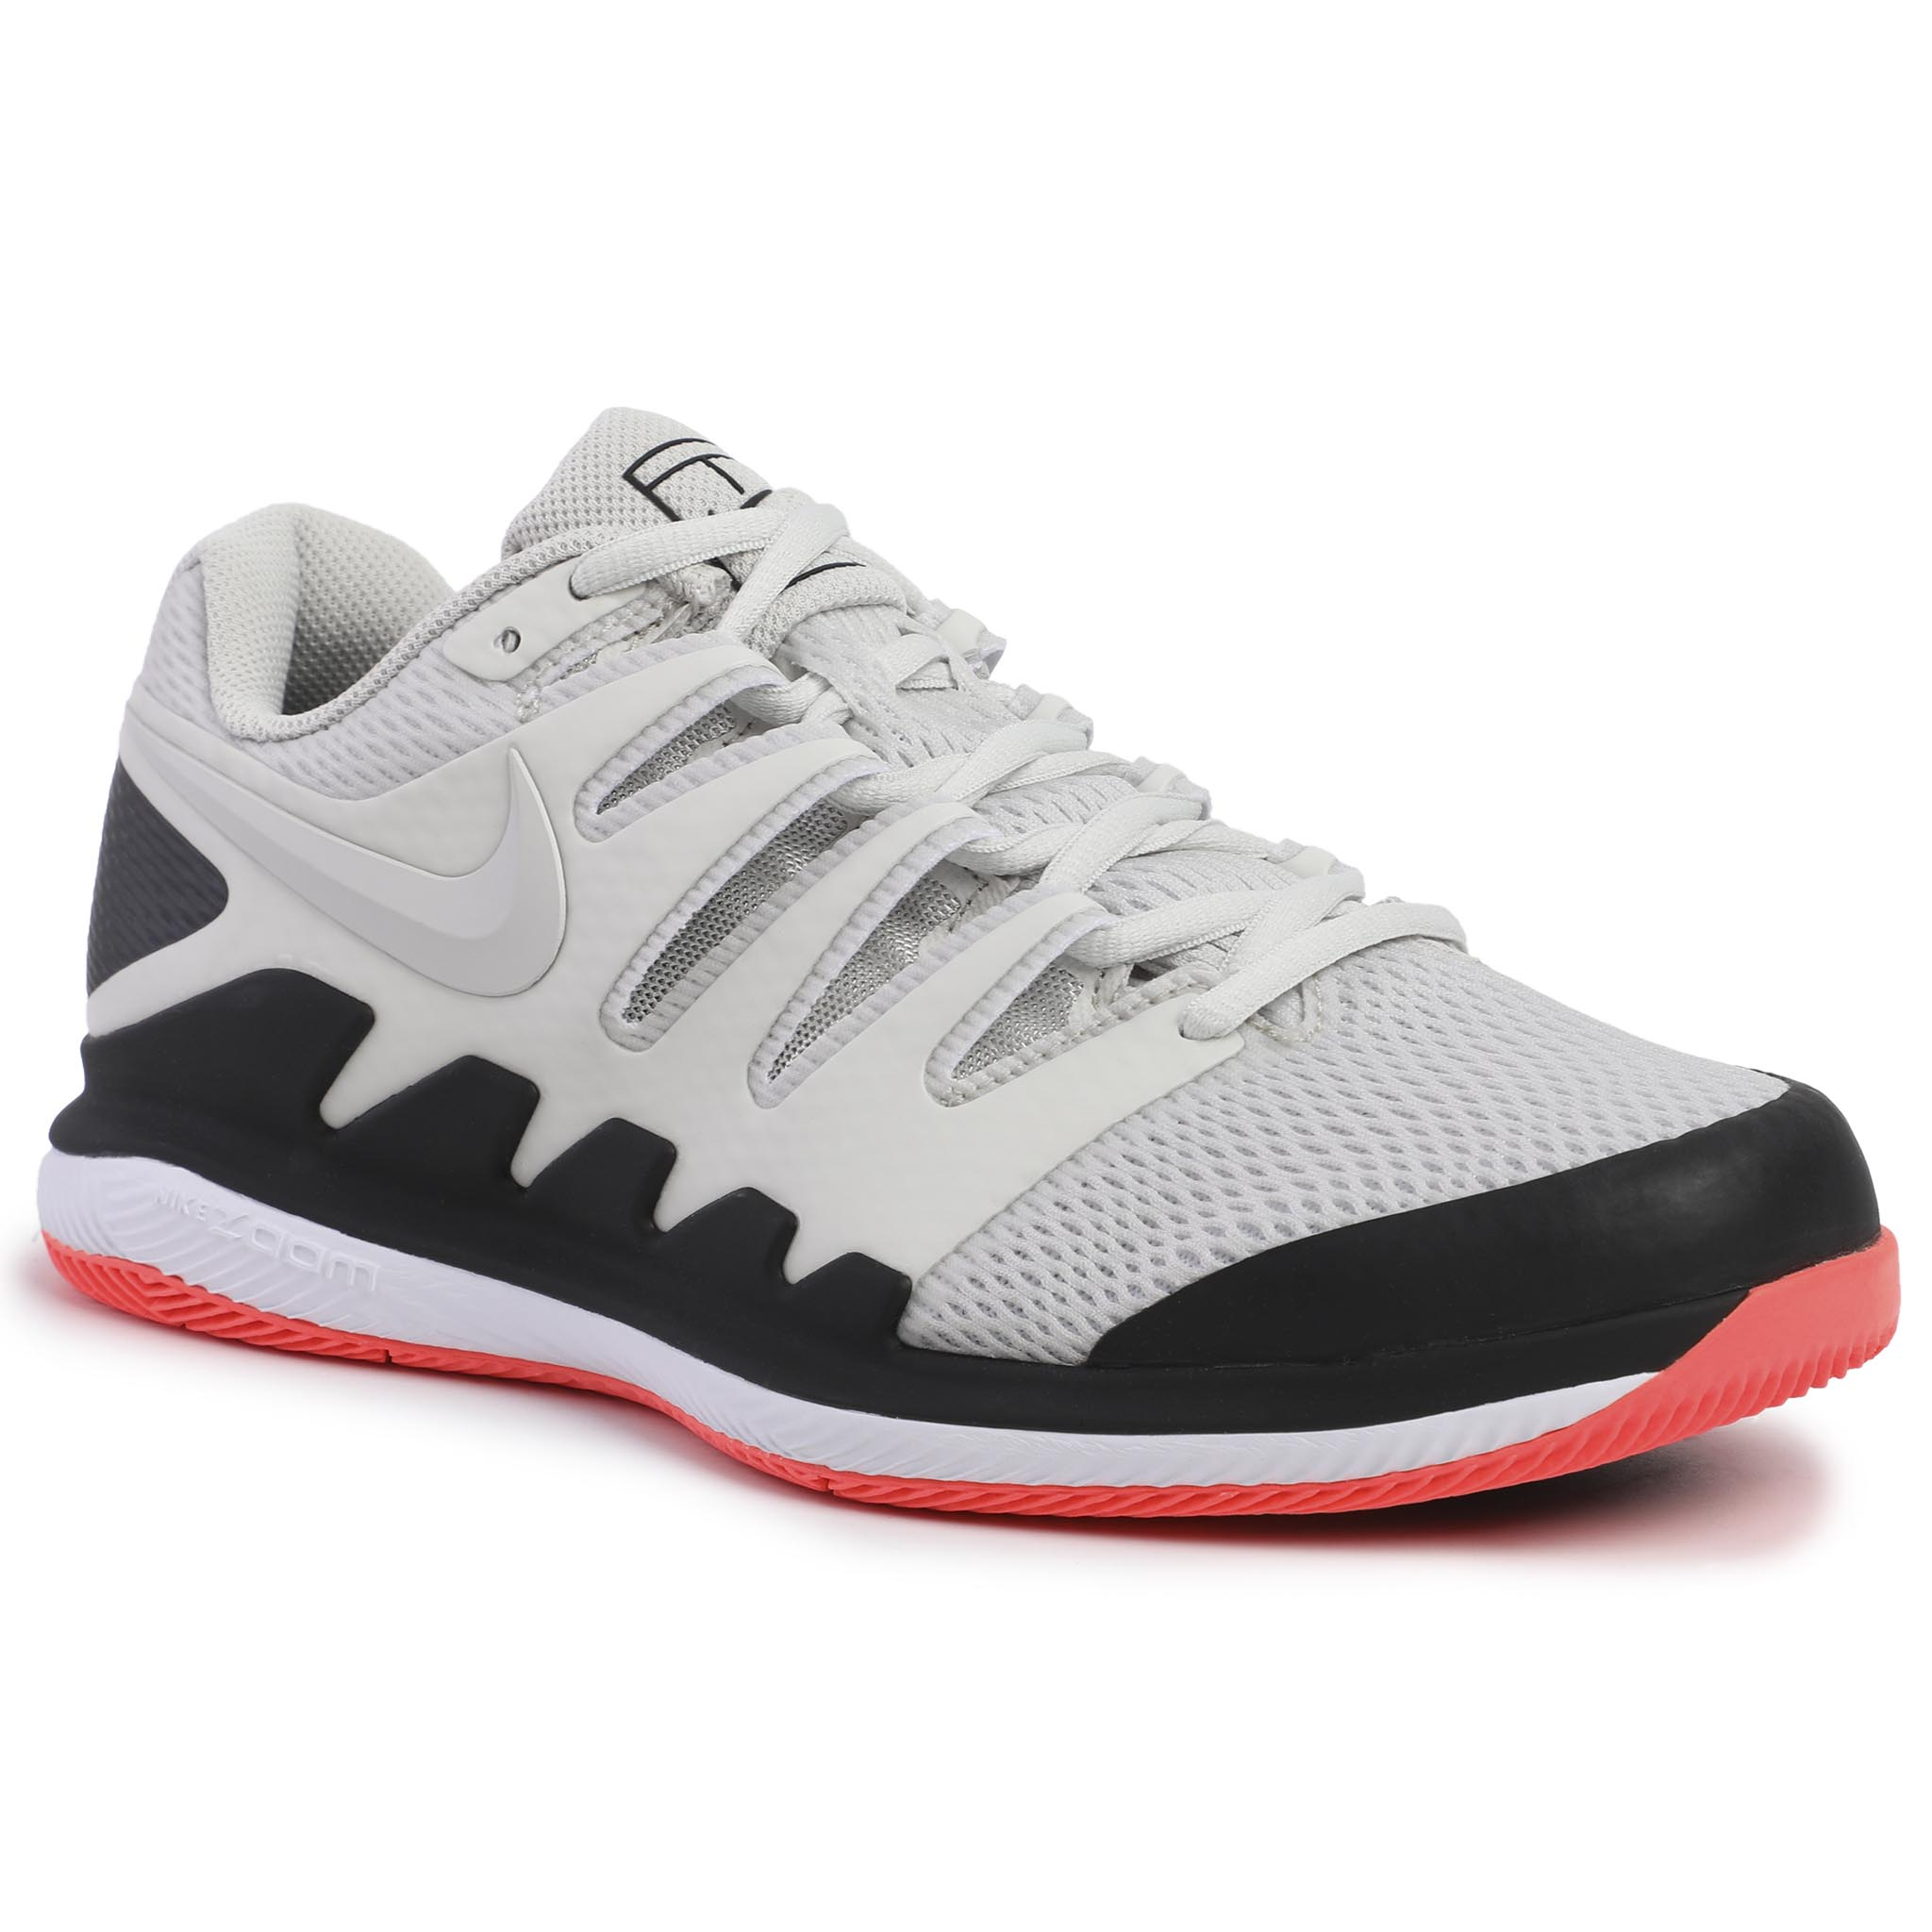 Pantofi Nike - Air Zoom Vapor X Hc Aa8030 007 Light Bone/Light Bone/Black imagine epantofi.ro 2021